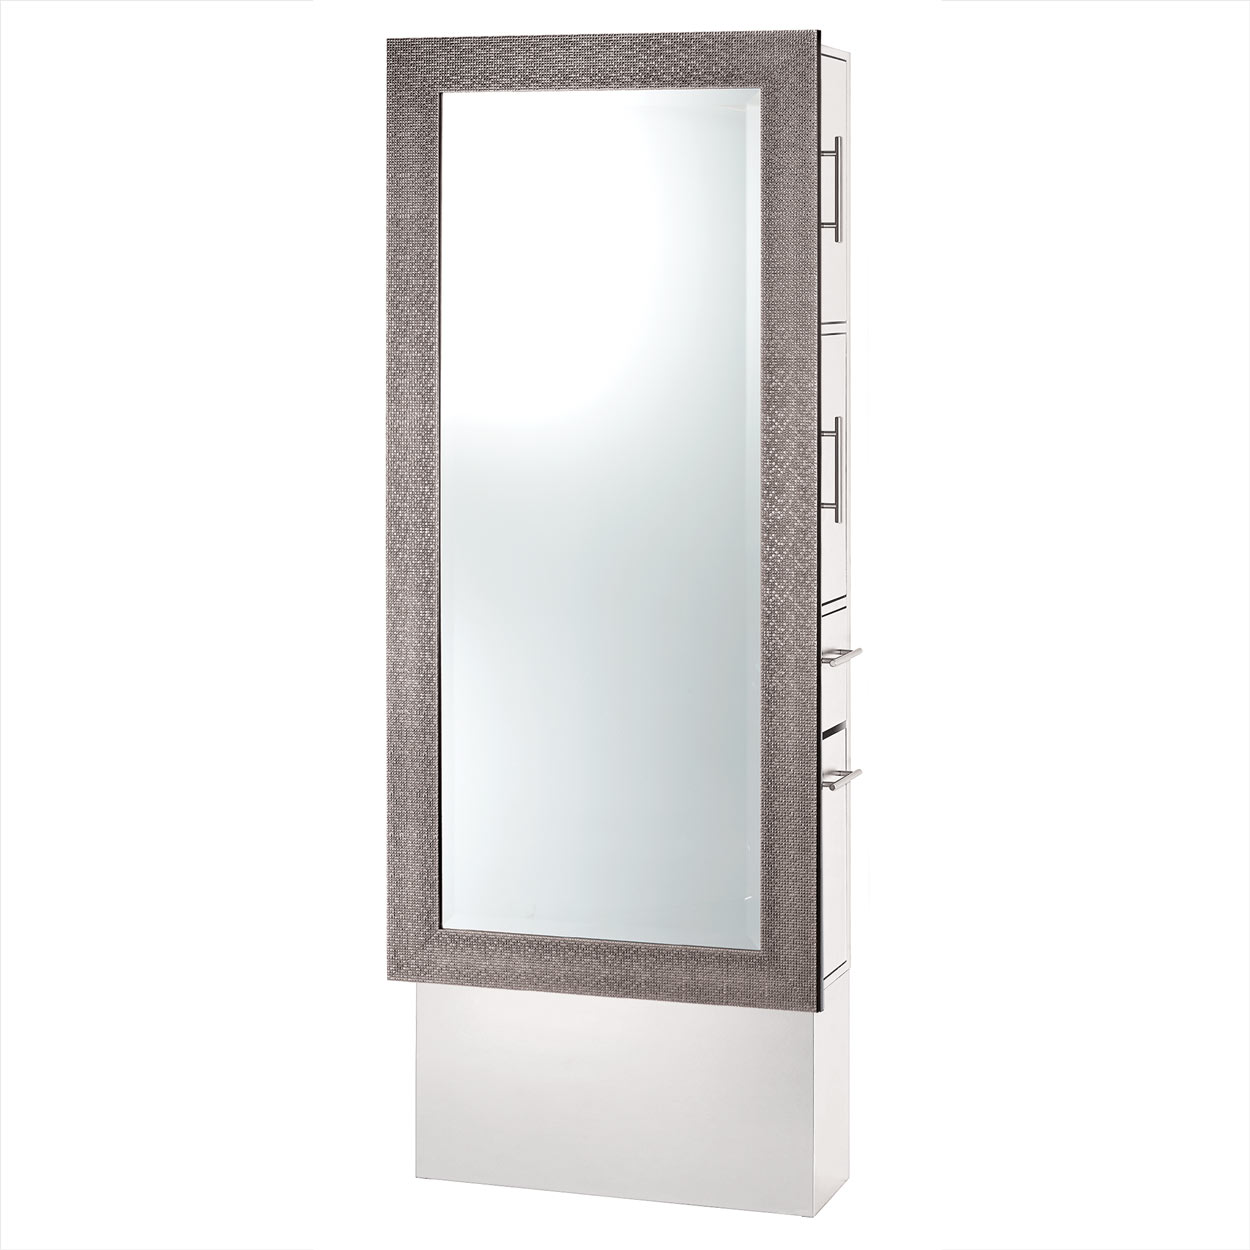 Diamond Framed Mirror Styling Station On Base alternative product image 3